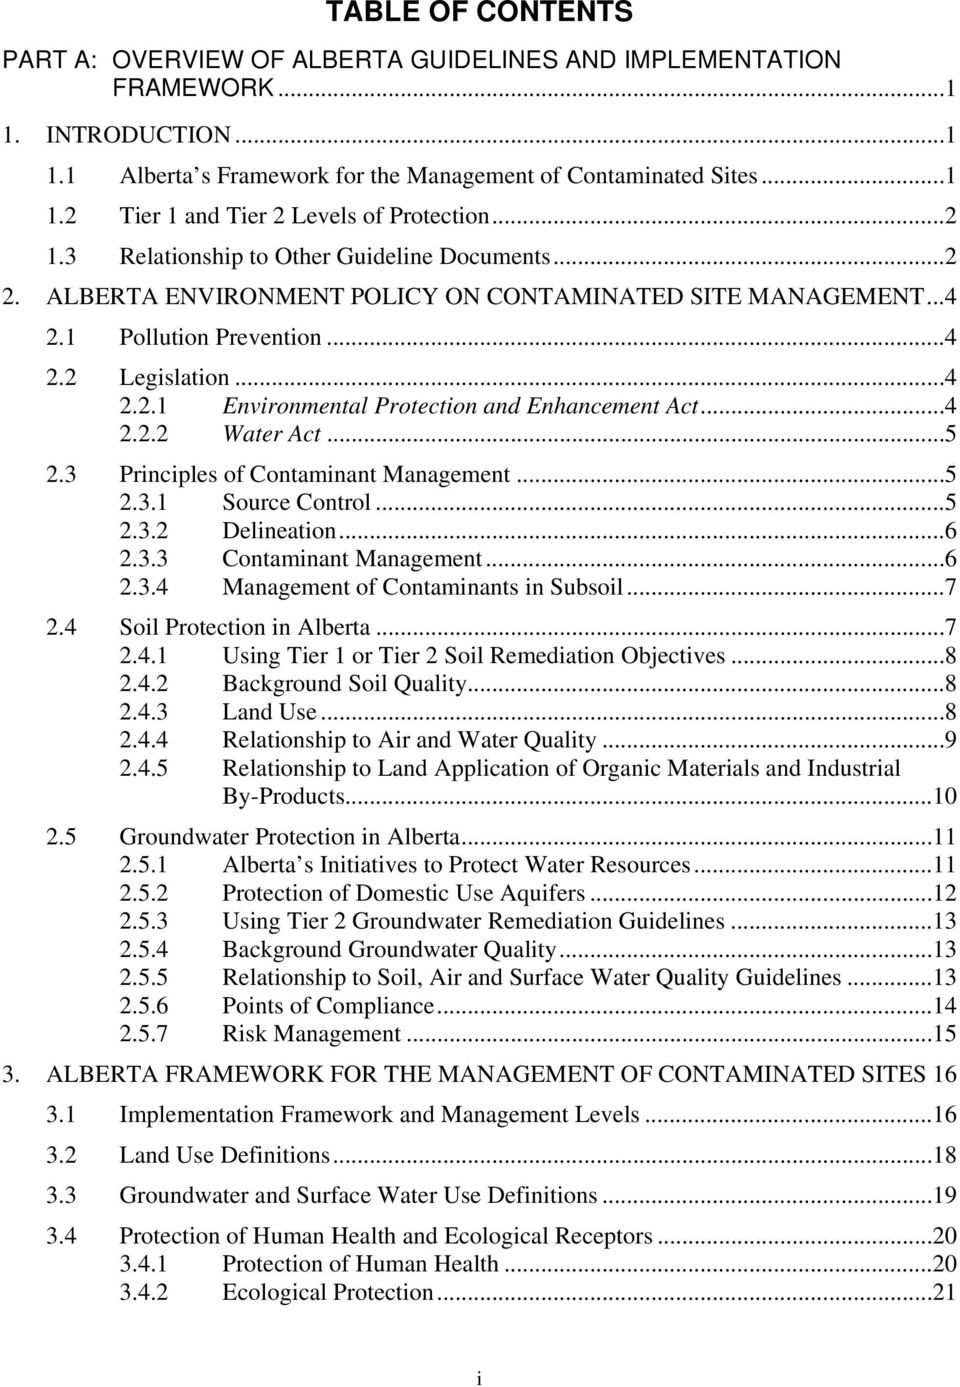 ..4 2.2.2 Water Act...5 2.3 Principles of Contaminant Management...5 2.3.1 Source Control...5 2.3.2 Delineation...6 2.3.3 Contaminant Management...6 2.3.4 Management of Contaminants in Subsoil...7 2.